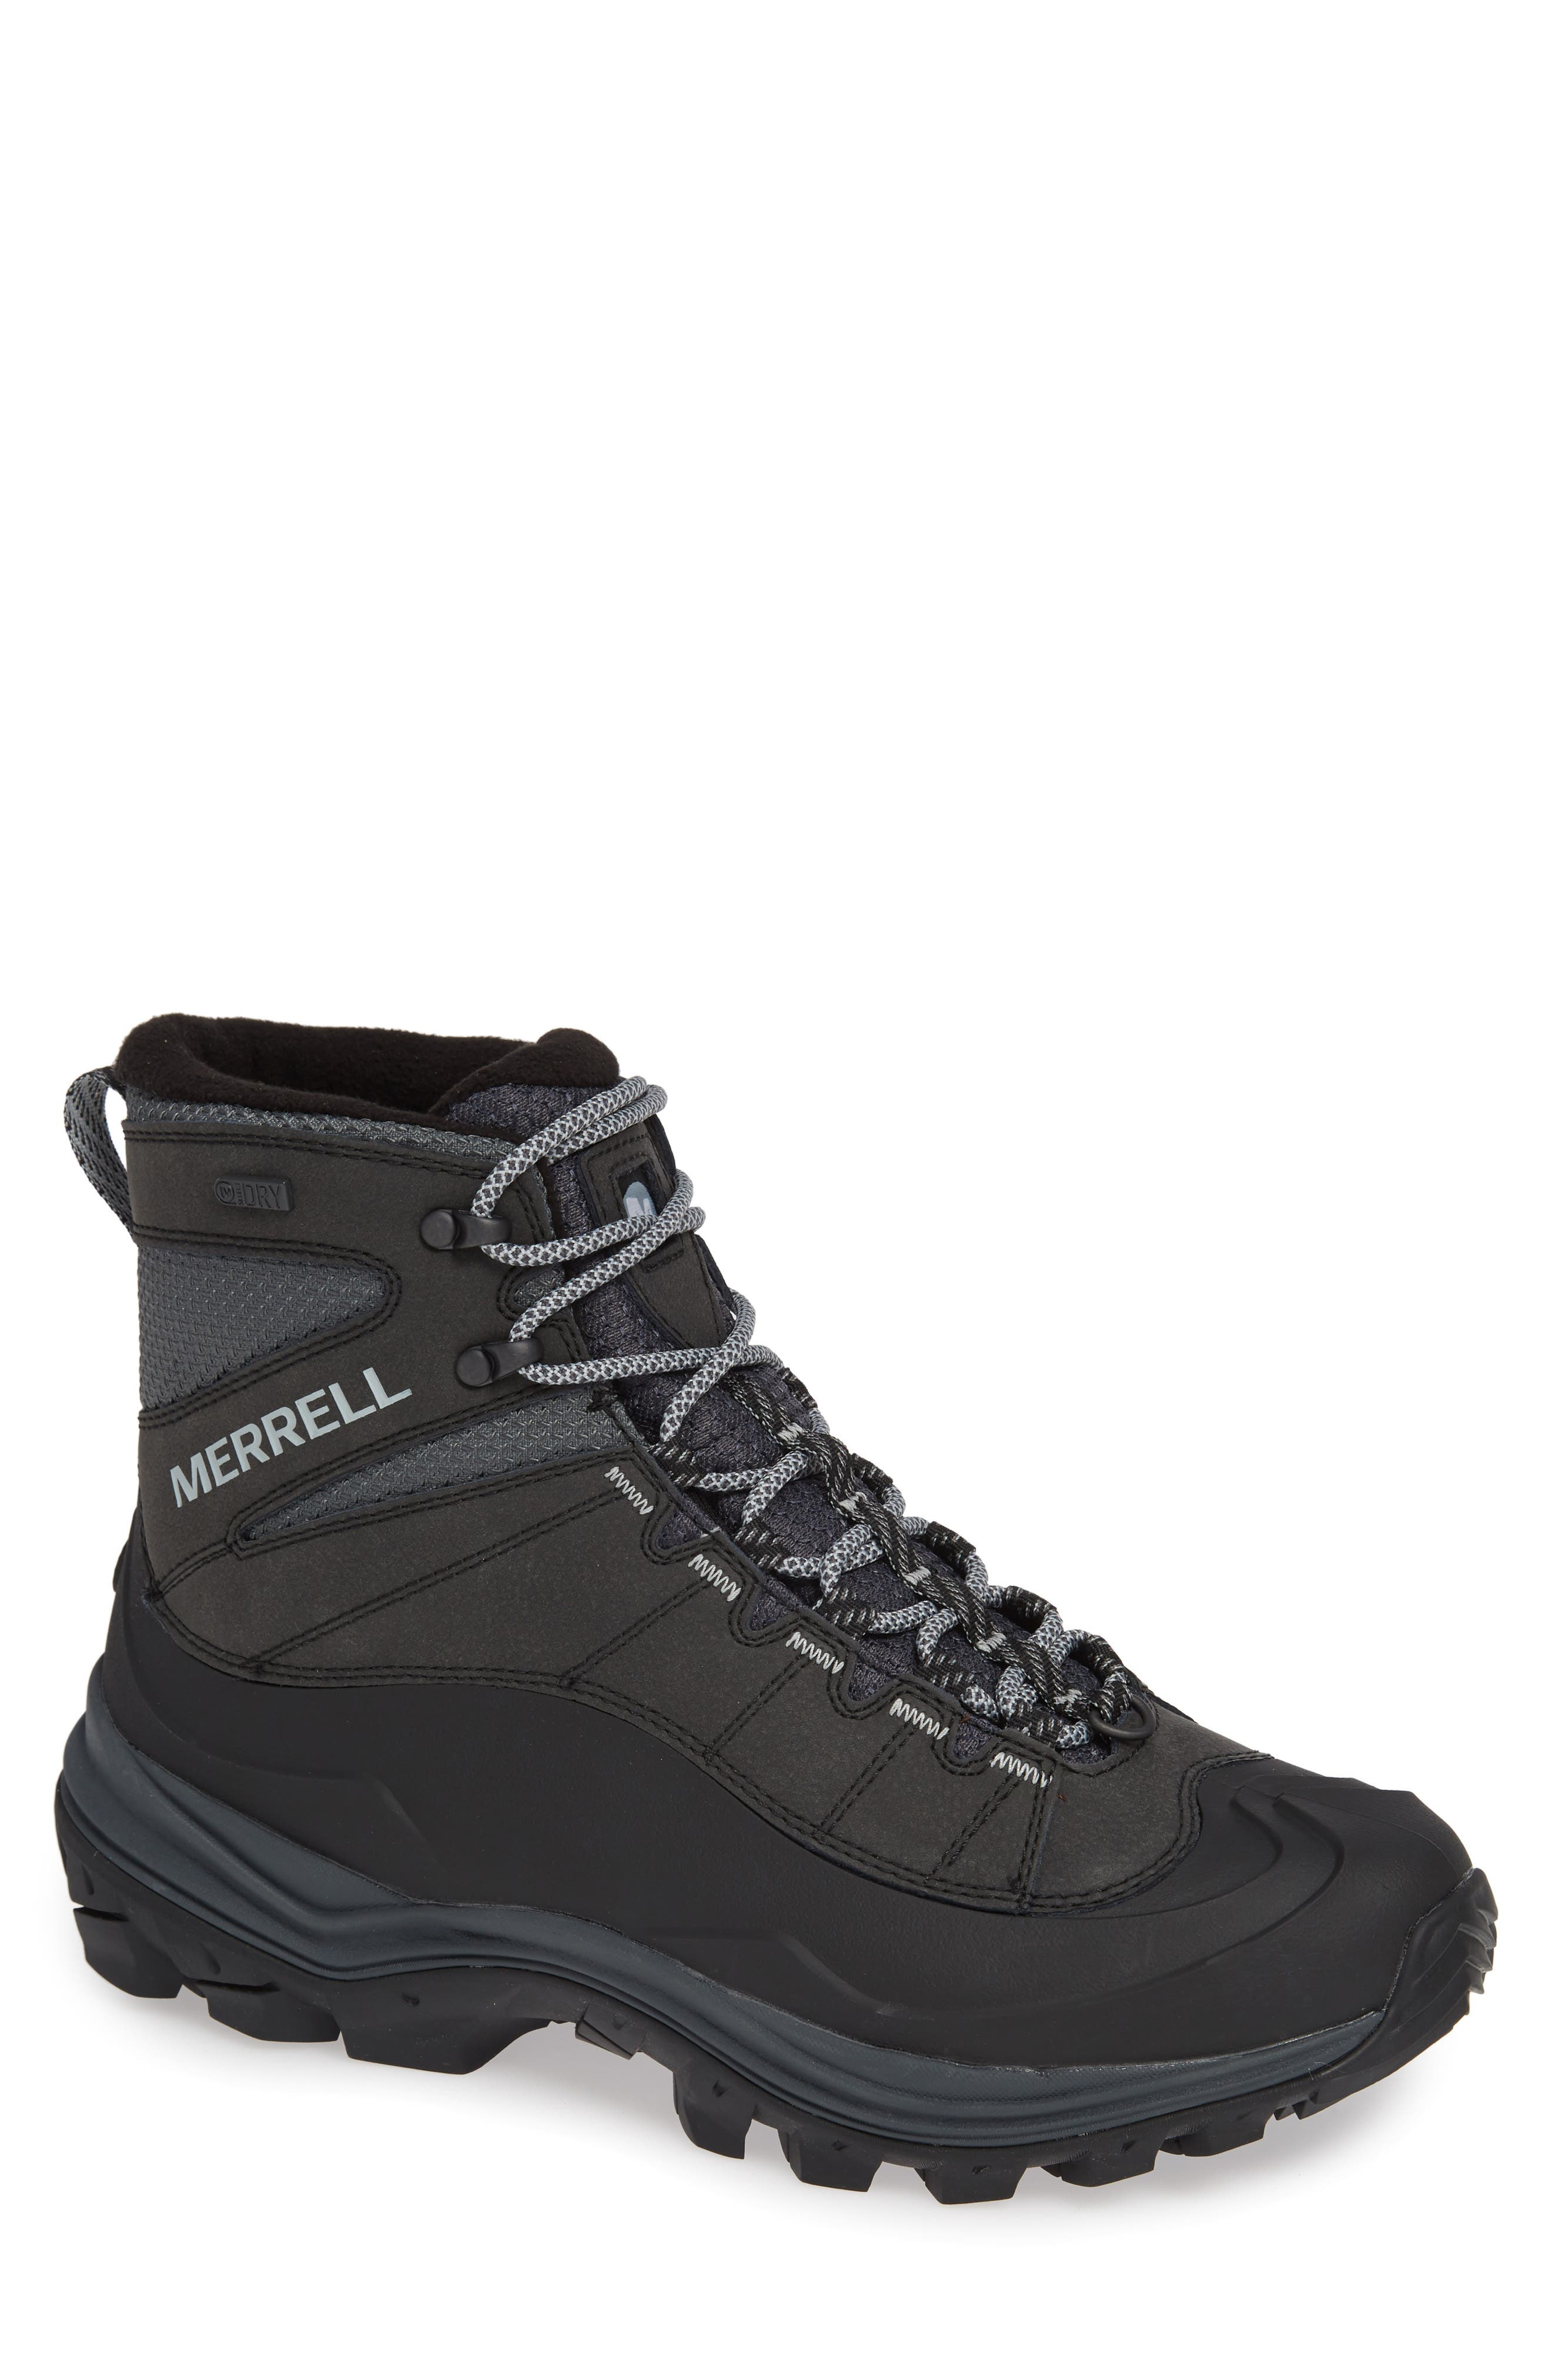 Thermo Chill Waterproof Snow Boot,                             Main thumbnail 1, color,                             BLACK